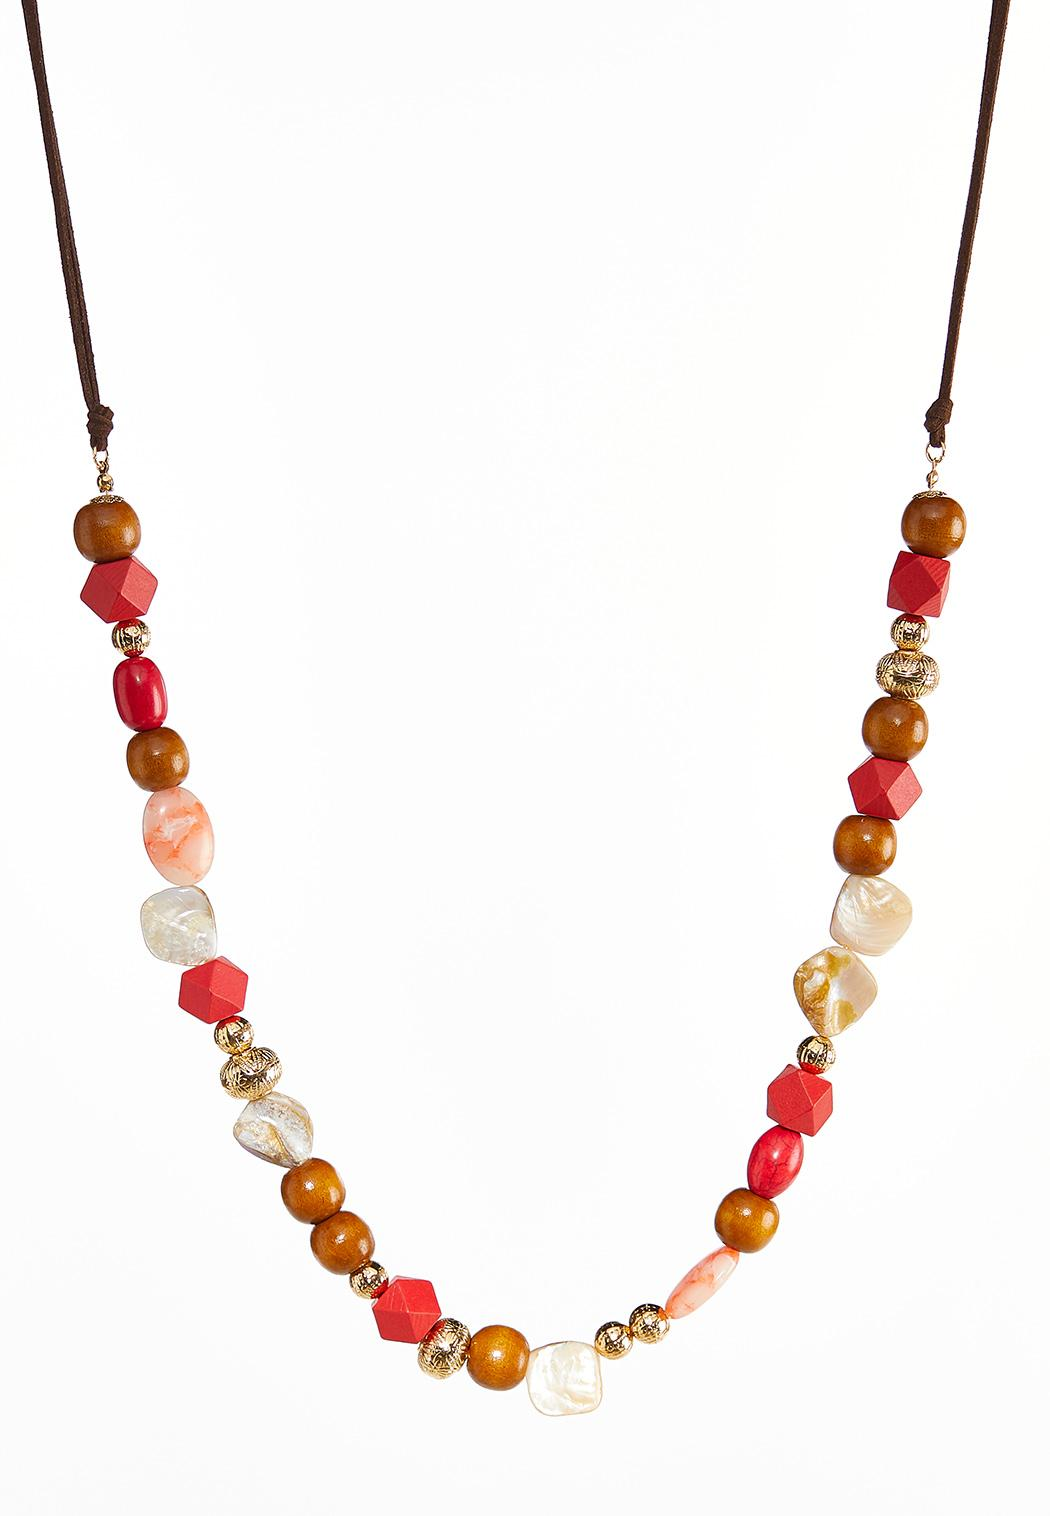 Mixed Bead Cord Necklace